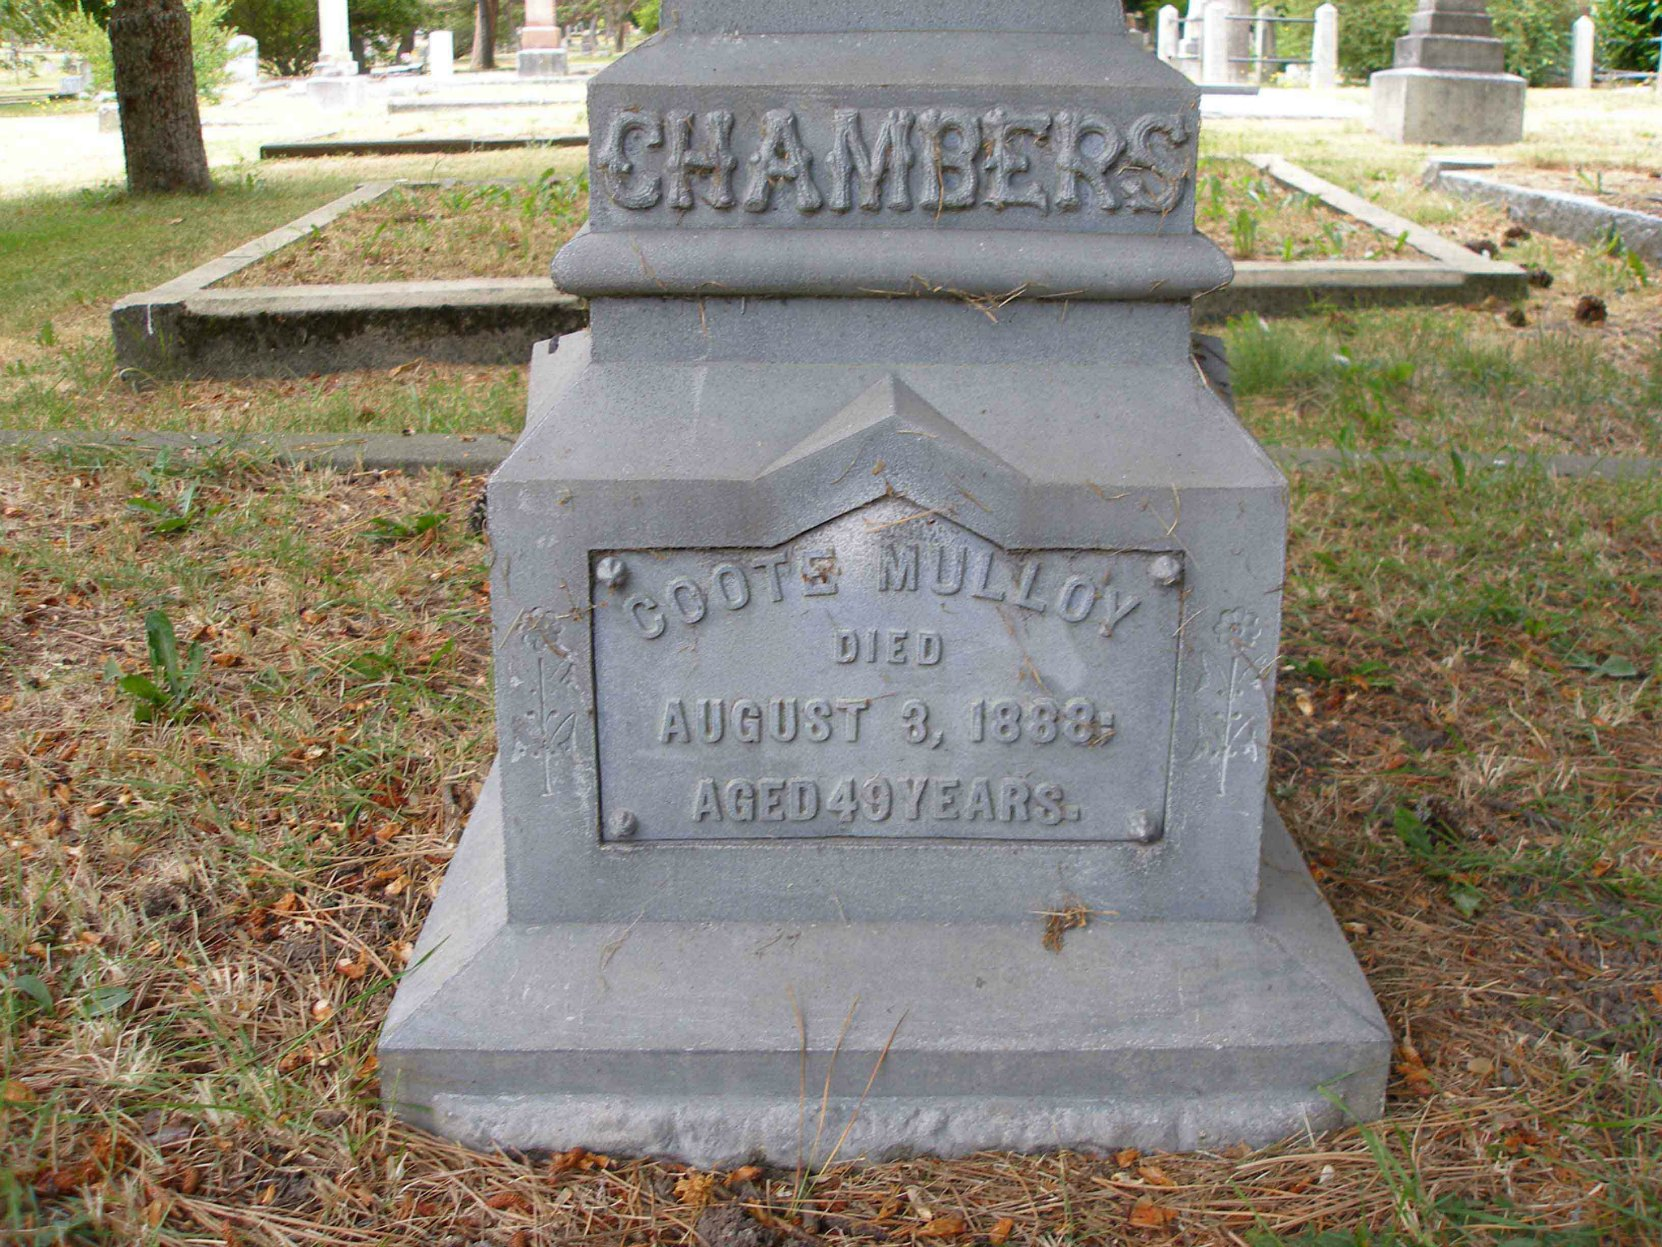 Inscription on the grave of Coote Mulloy Chambers, Past Grand Master, in Ross Bay Cemetery, Victoria, B.C.